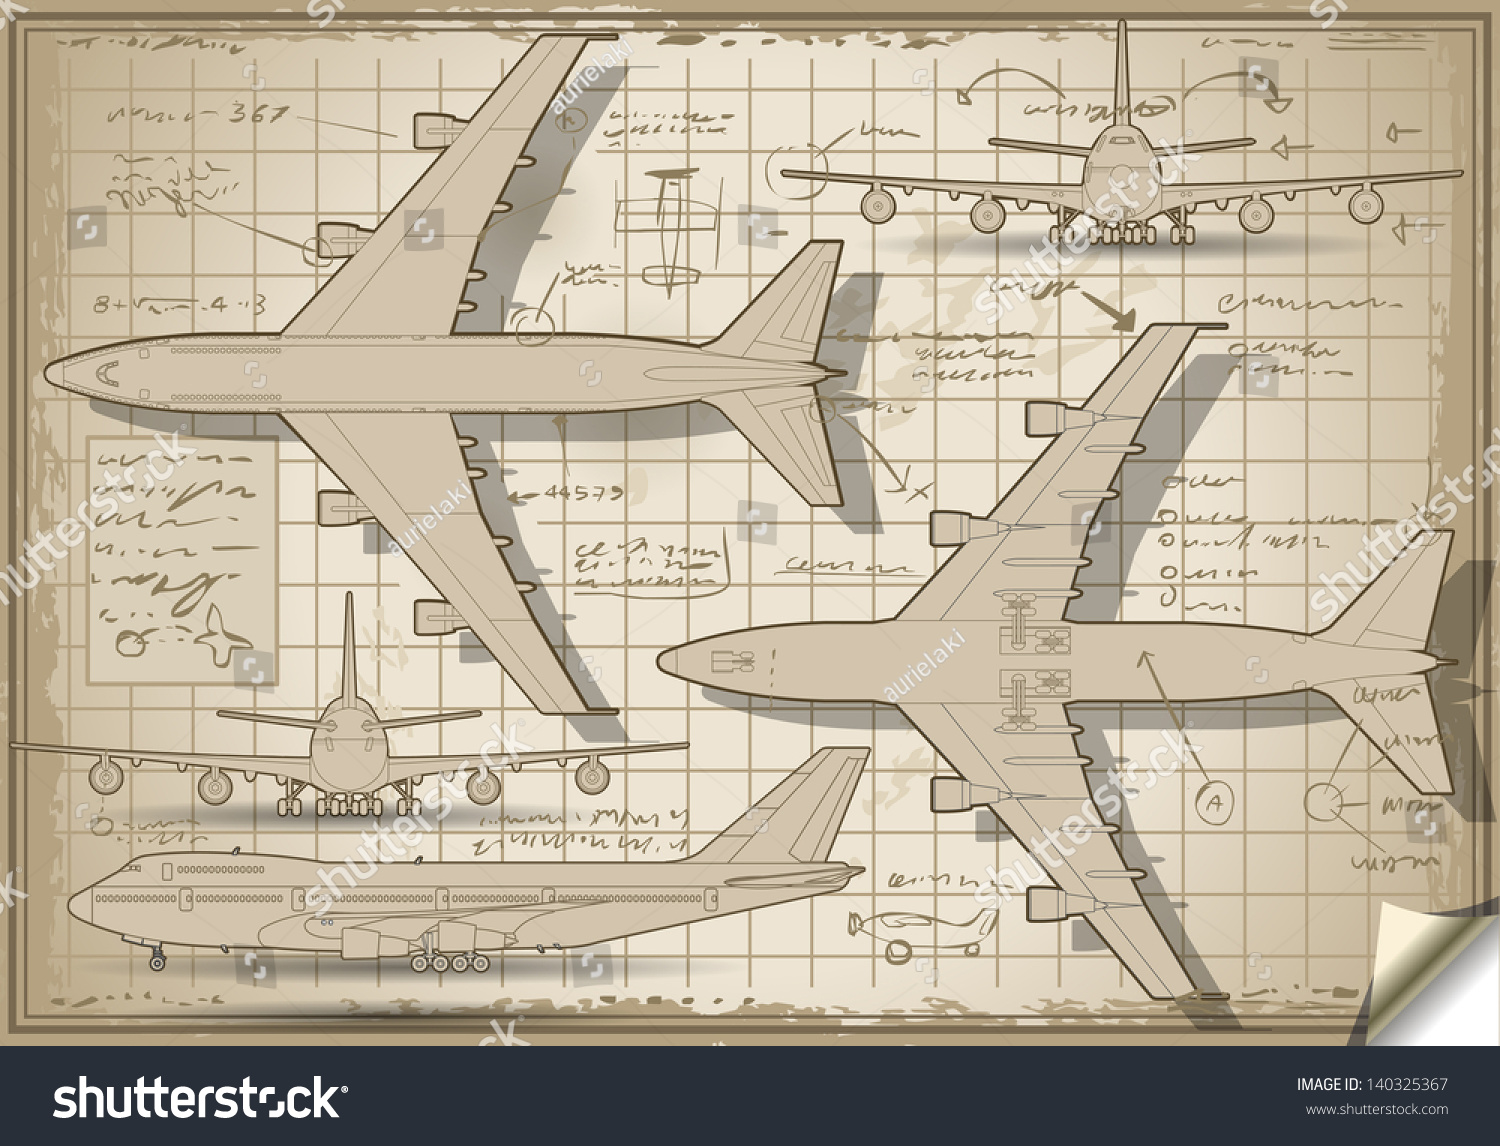 hight resolution of passenger jet airplane project diagram engine orthographic views isometric aviation airplane passenger 3d isolated illustration